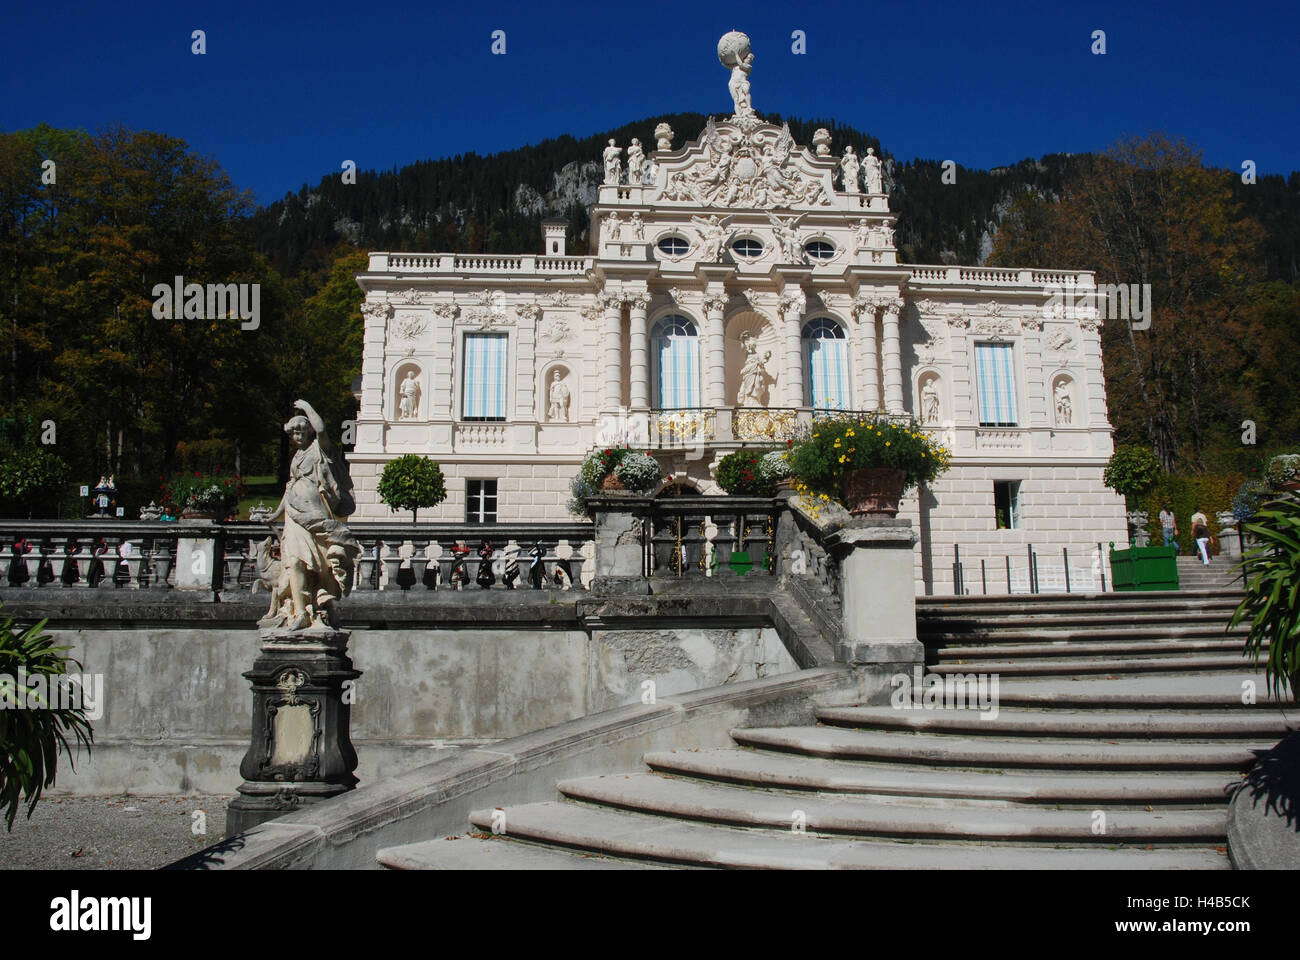 Germany, Bavaria, lock, gentle court, stairs rising, autumn, Upper Bavaria, castle building, royal castle, castle - Stock Image